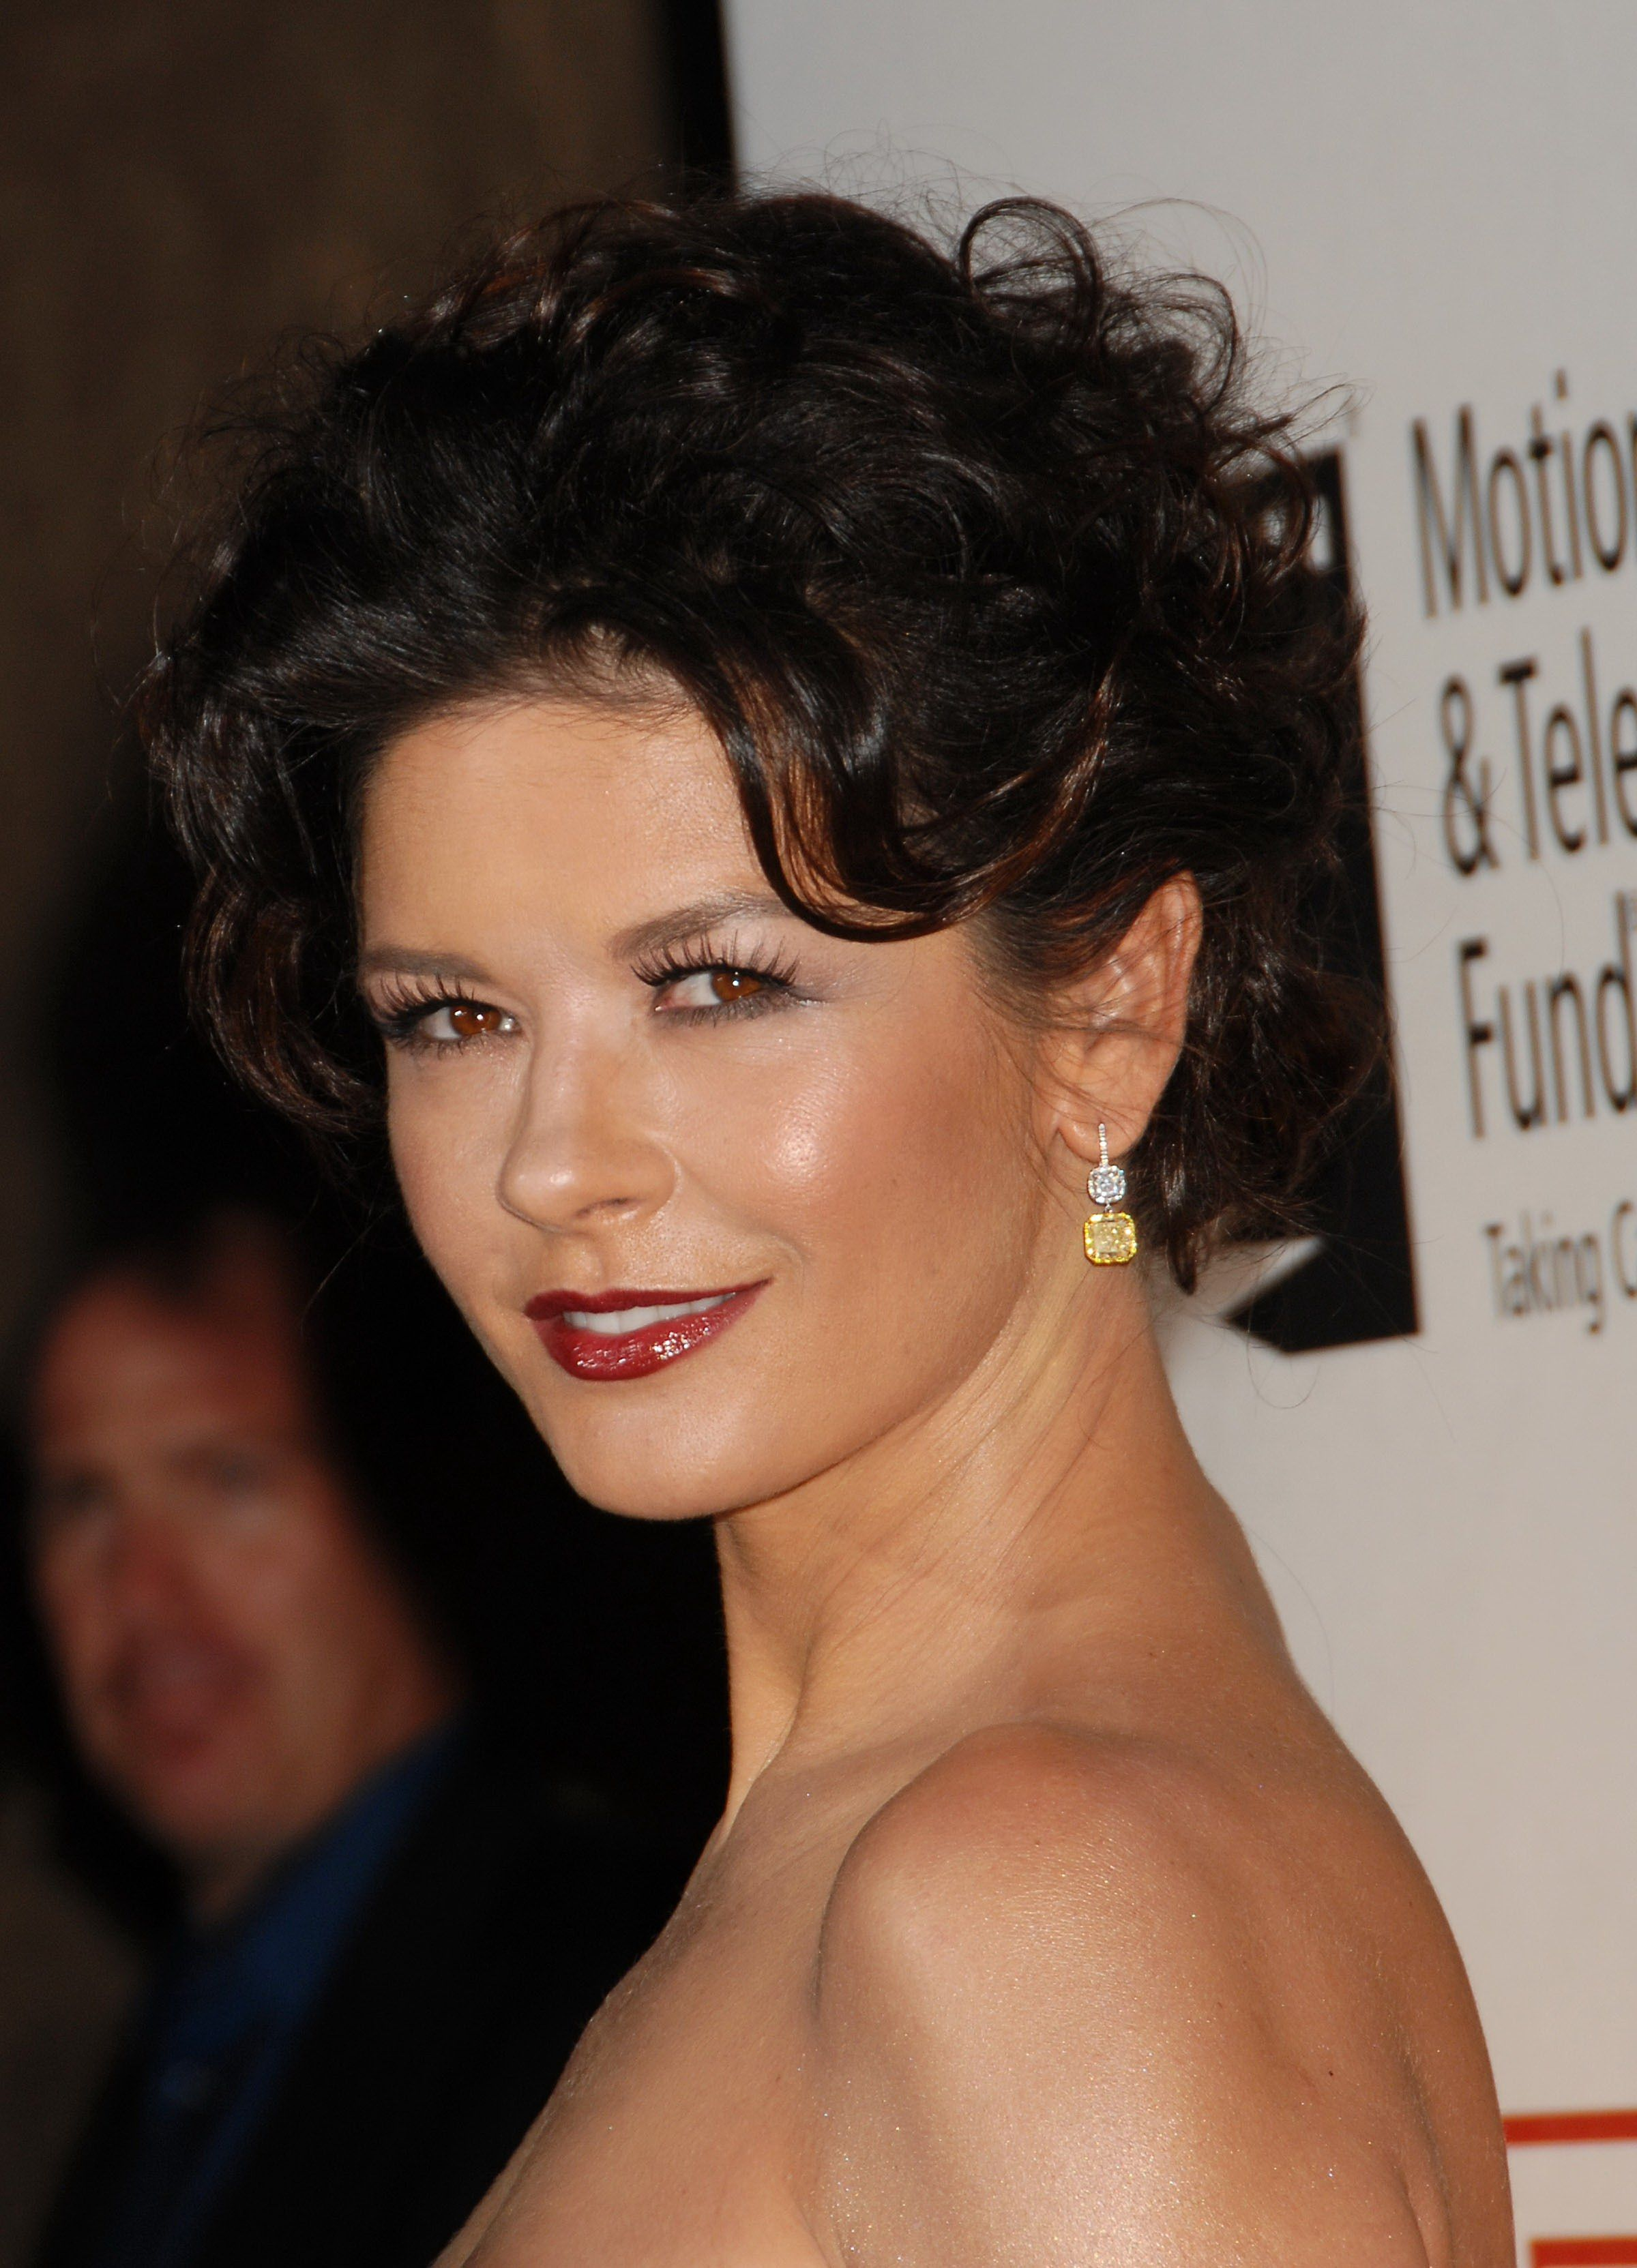 Catherine Zeta-Jones is a British actress from Swansea ... Catherine Zeta Jones